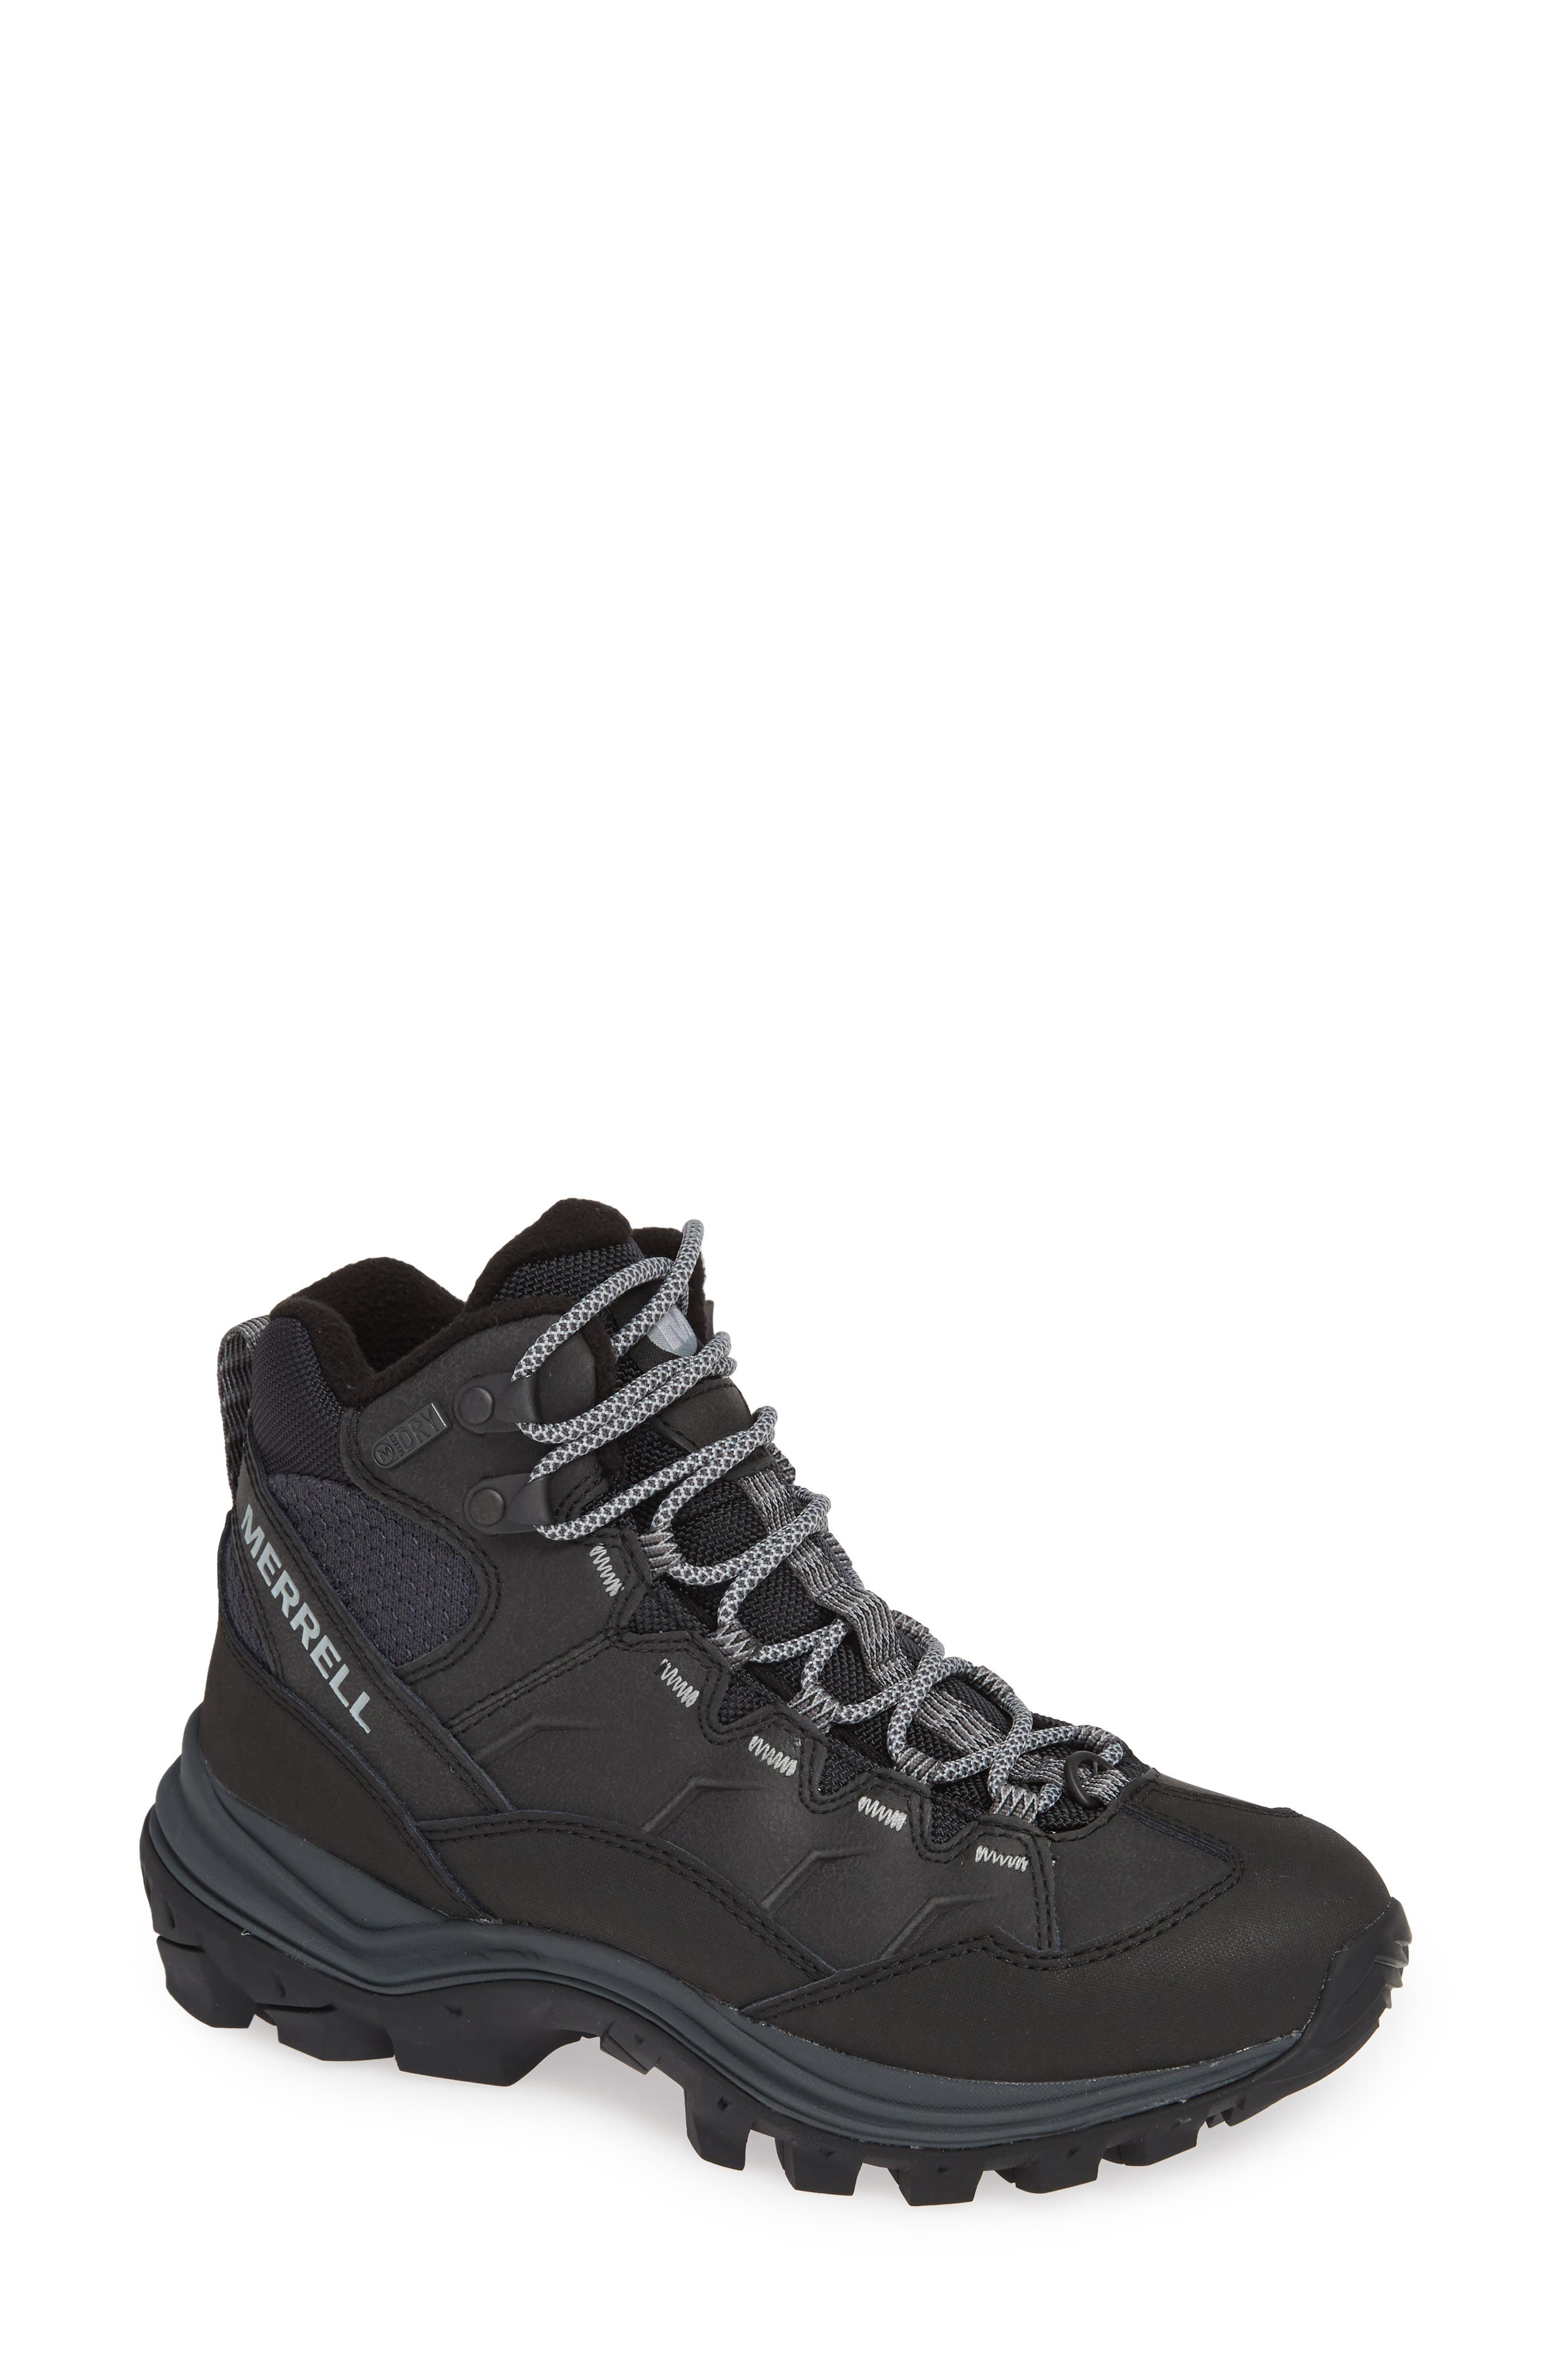 Thermo Chill Waterproof Snow Boot,                         Main,                         color, BLACK LEATHER